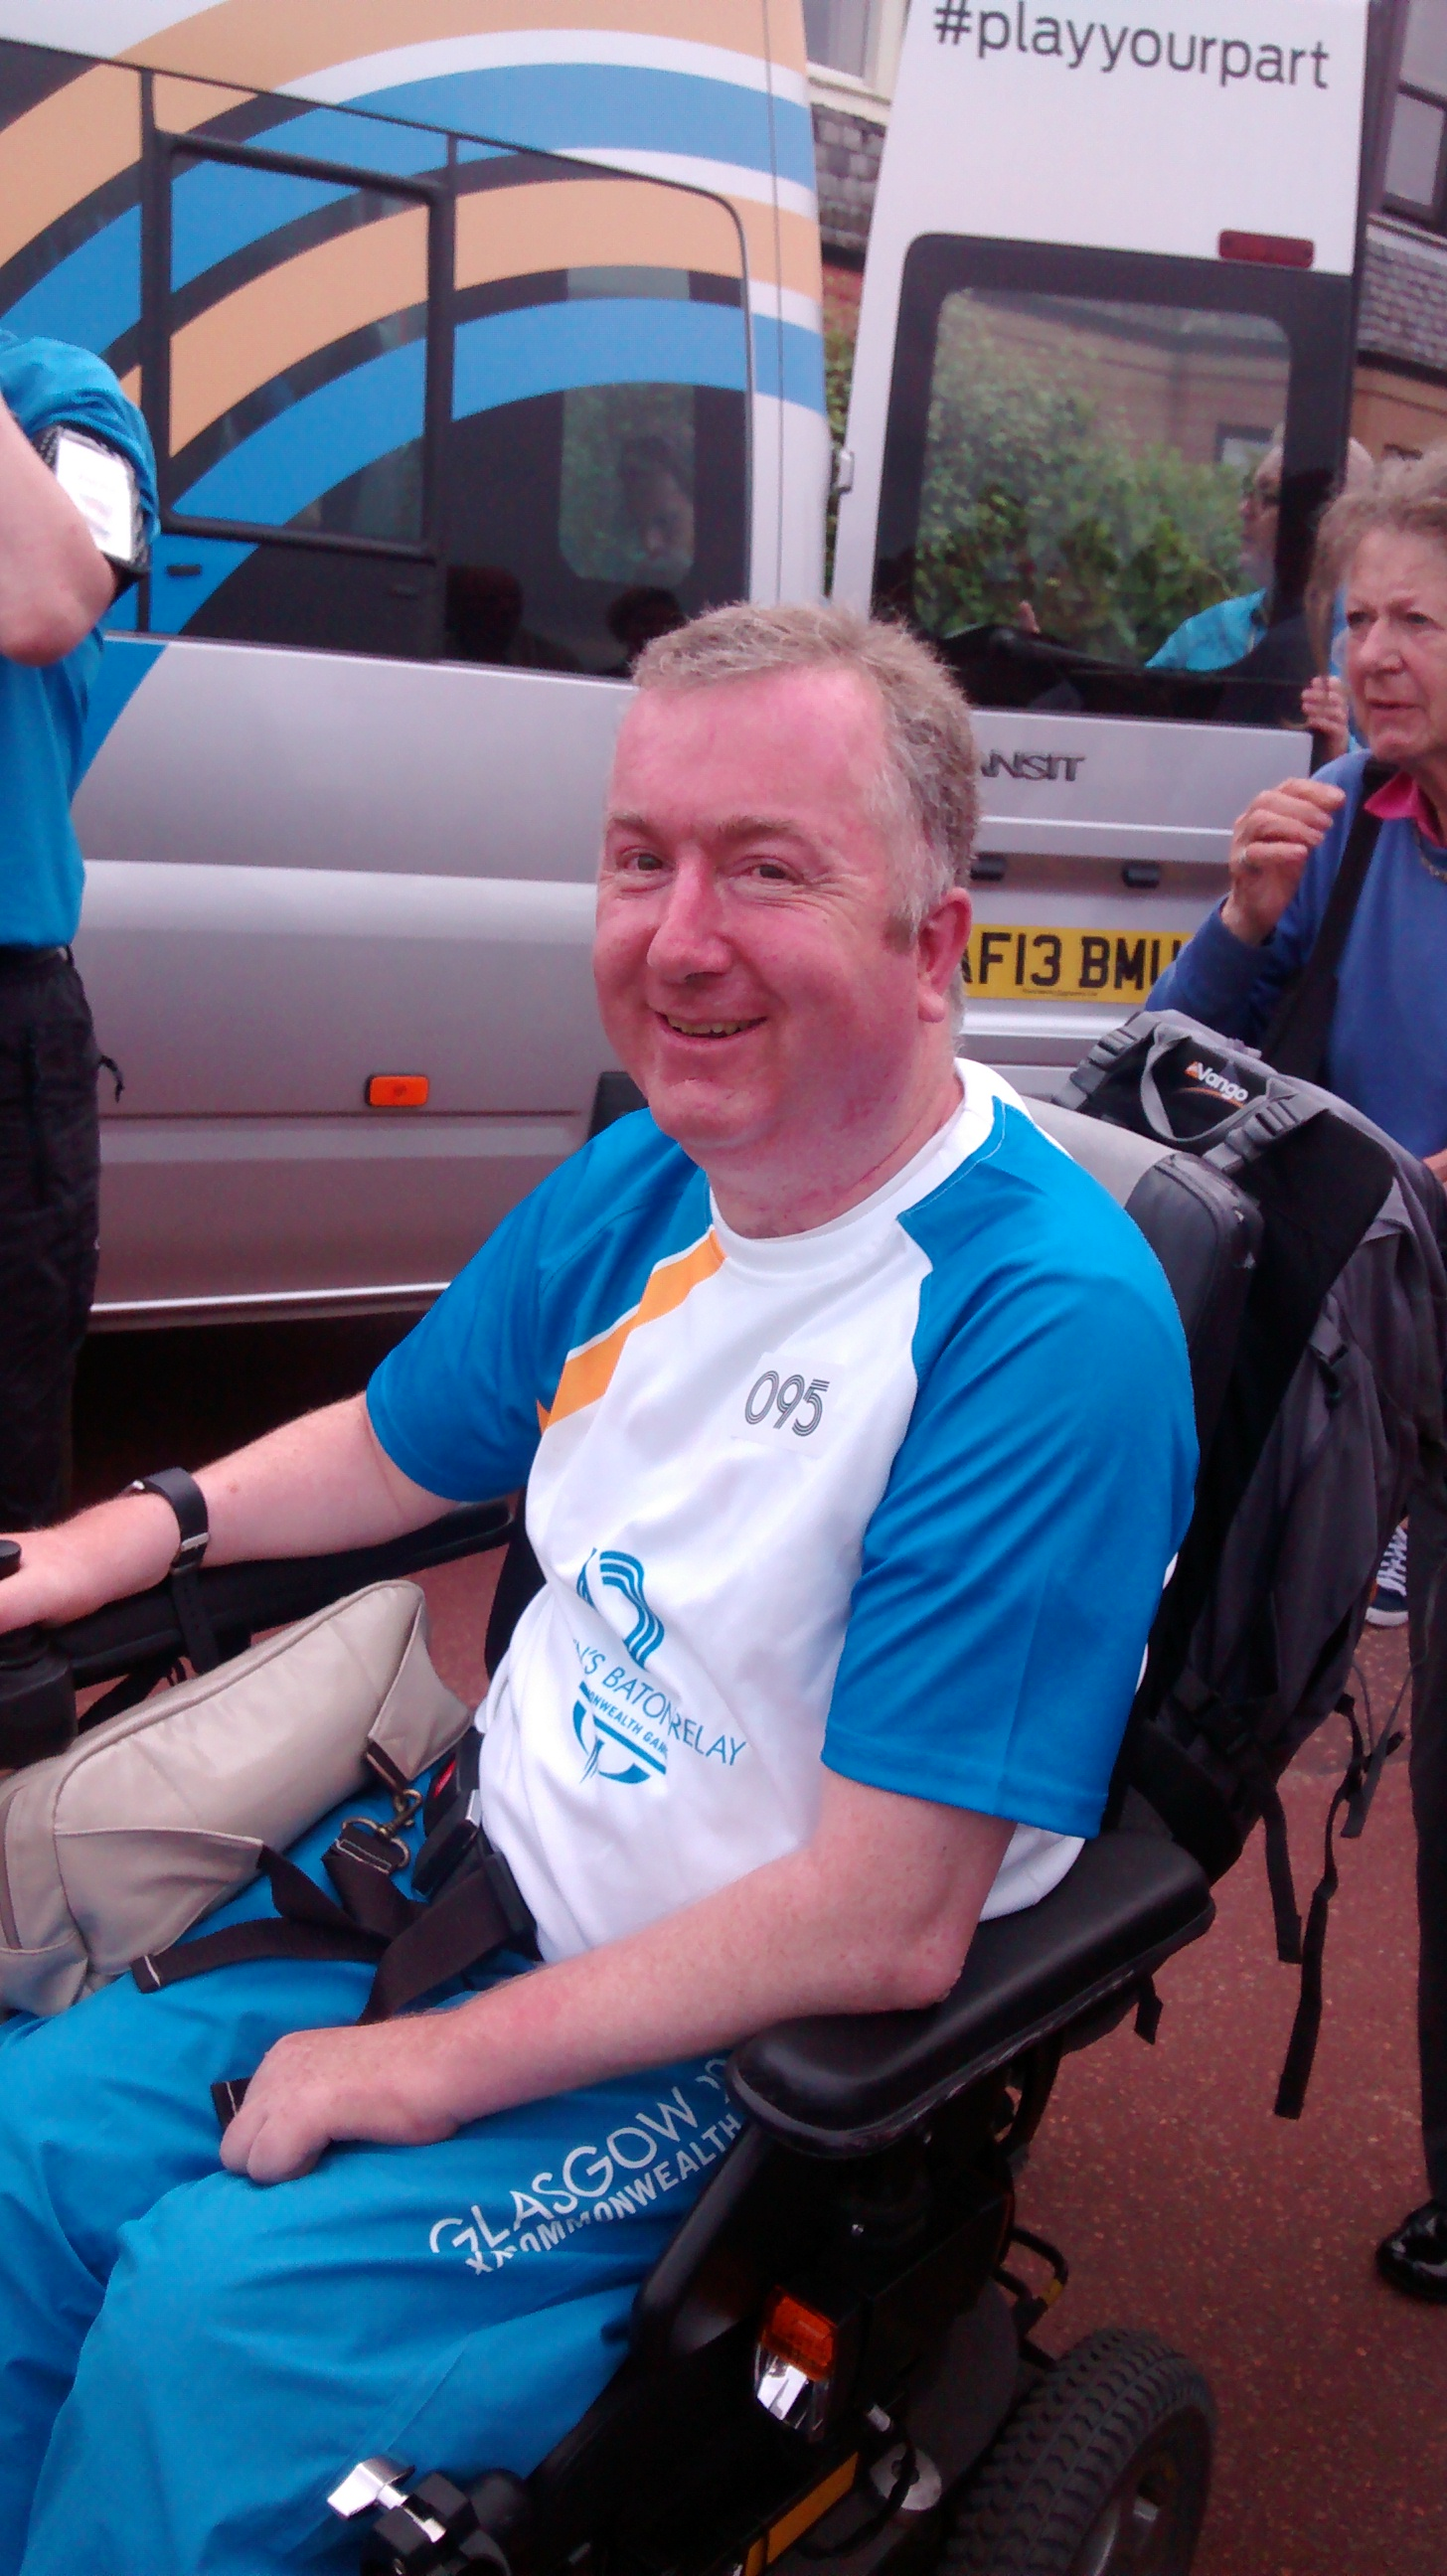 1969-2017 - Ian was born in Edinburgh on 13 August 1969 and at the age of 7 was diagnosed with Ataxia-Telangiectasia, a life limiting condition caused by an extremely rare gene mutation. At that time the life expectancy of an individual with this condition was considered to be early 20s.Ian was determined to live his life to the fullest. As well as his tireless work with Citizens Advice he campaigned for better rights for those with physical disabilities, volunteered at a range of other organisations, completed the bronze, silver and gold Duke of Edinburgh award, and carried the Queen's baton for the 2014 Glasgow Commonwealth Games.